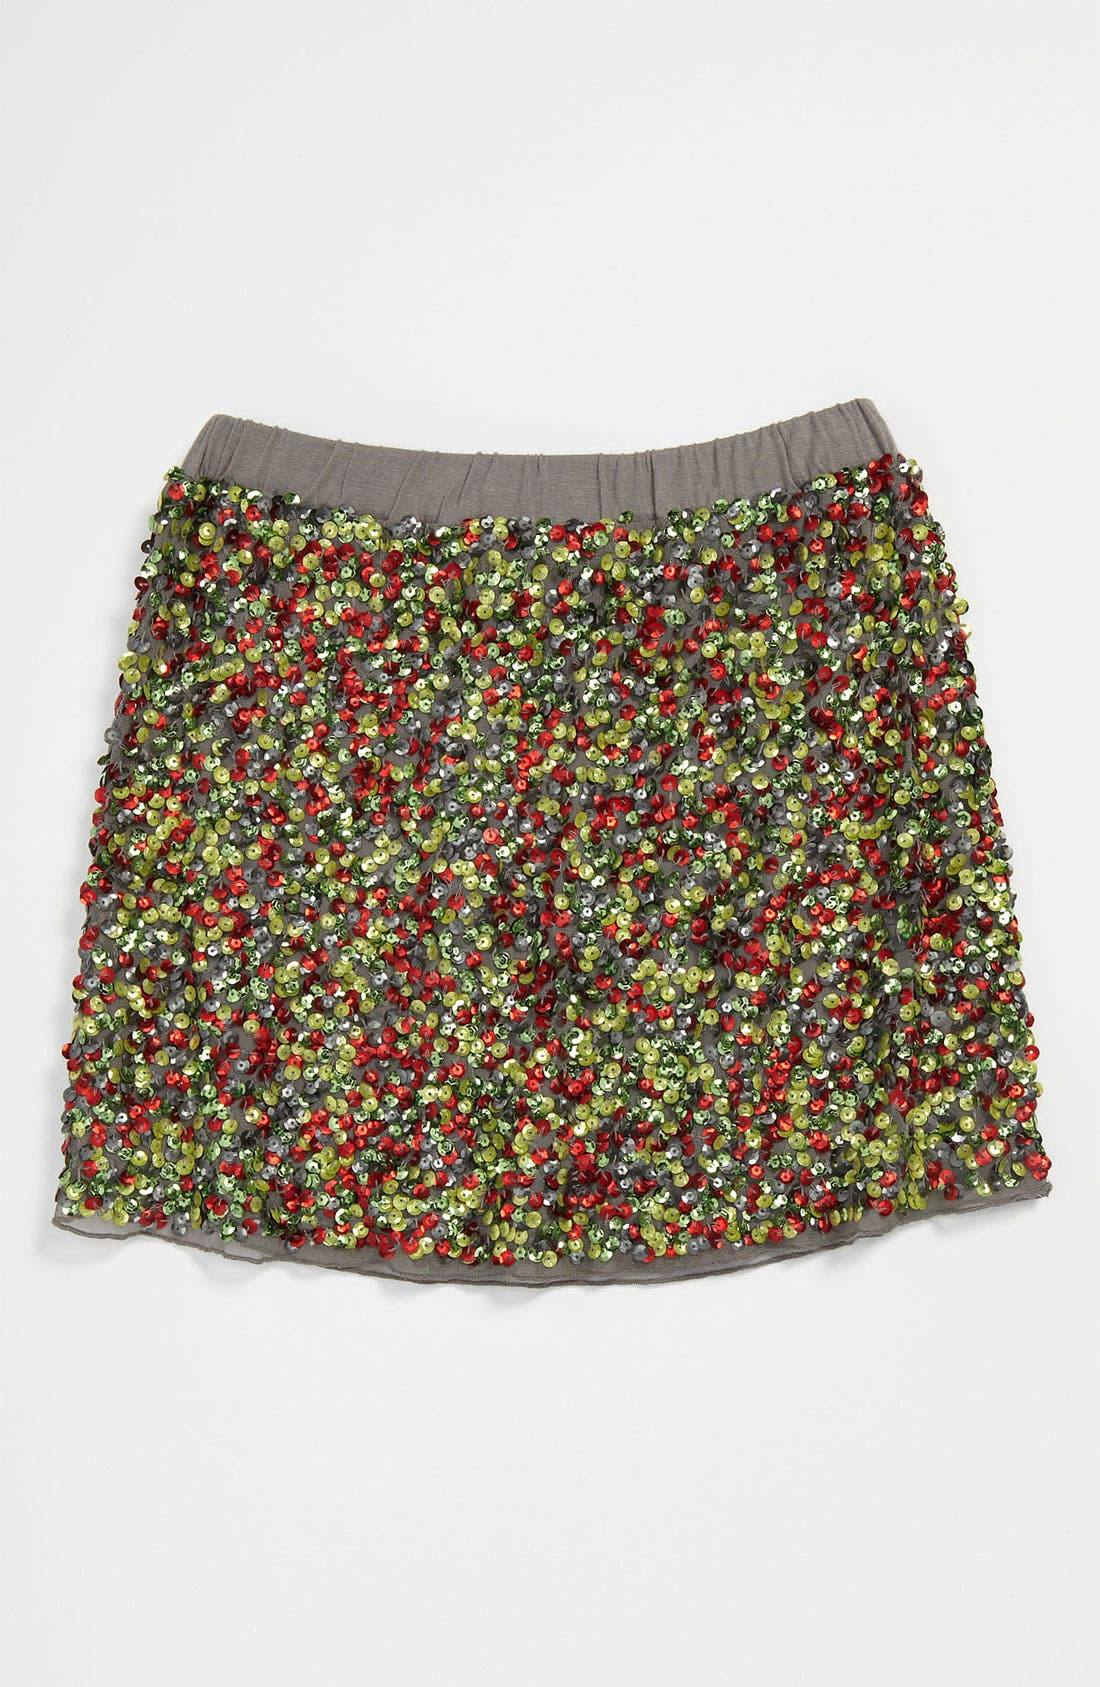 Alternate Image 1 Selected - Peek 'Zoe' Sequin Skirt (Little Girls & Big Girls)